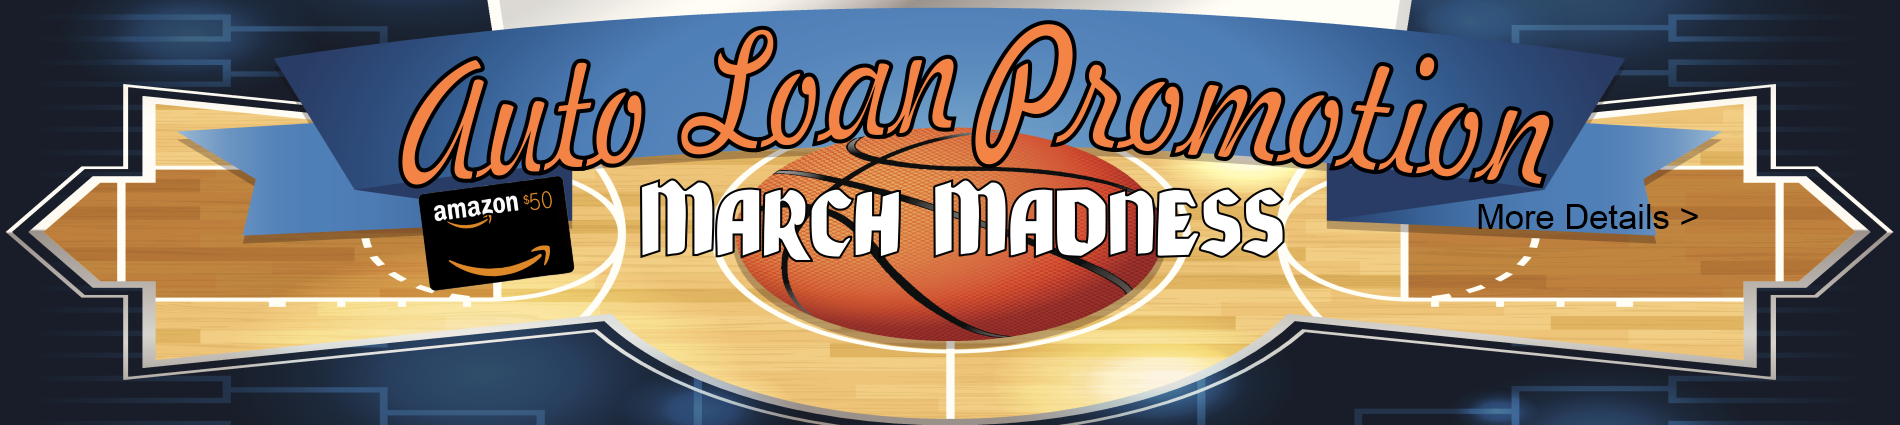 March Madness Auto Loan Promo